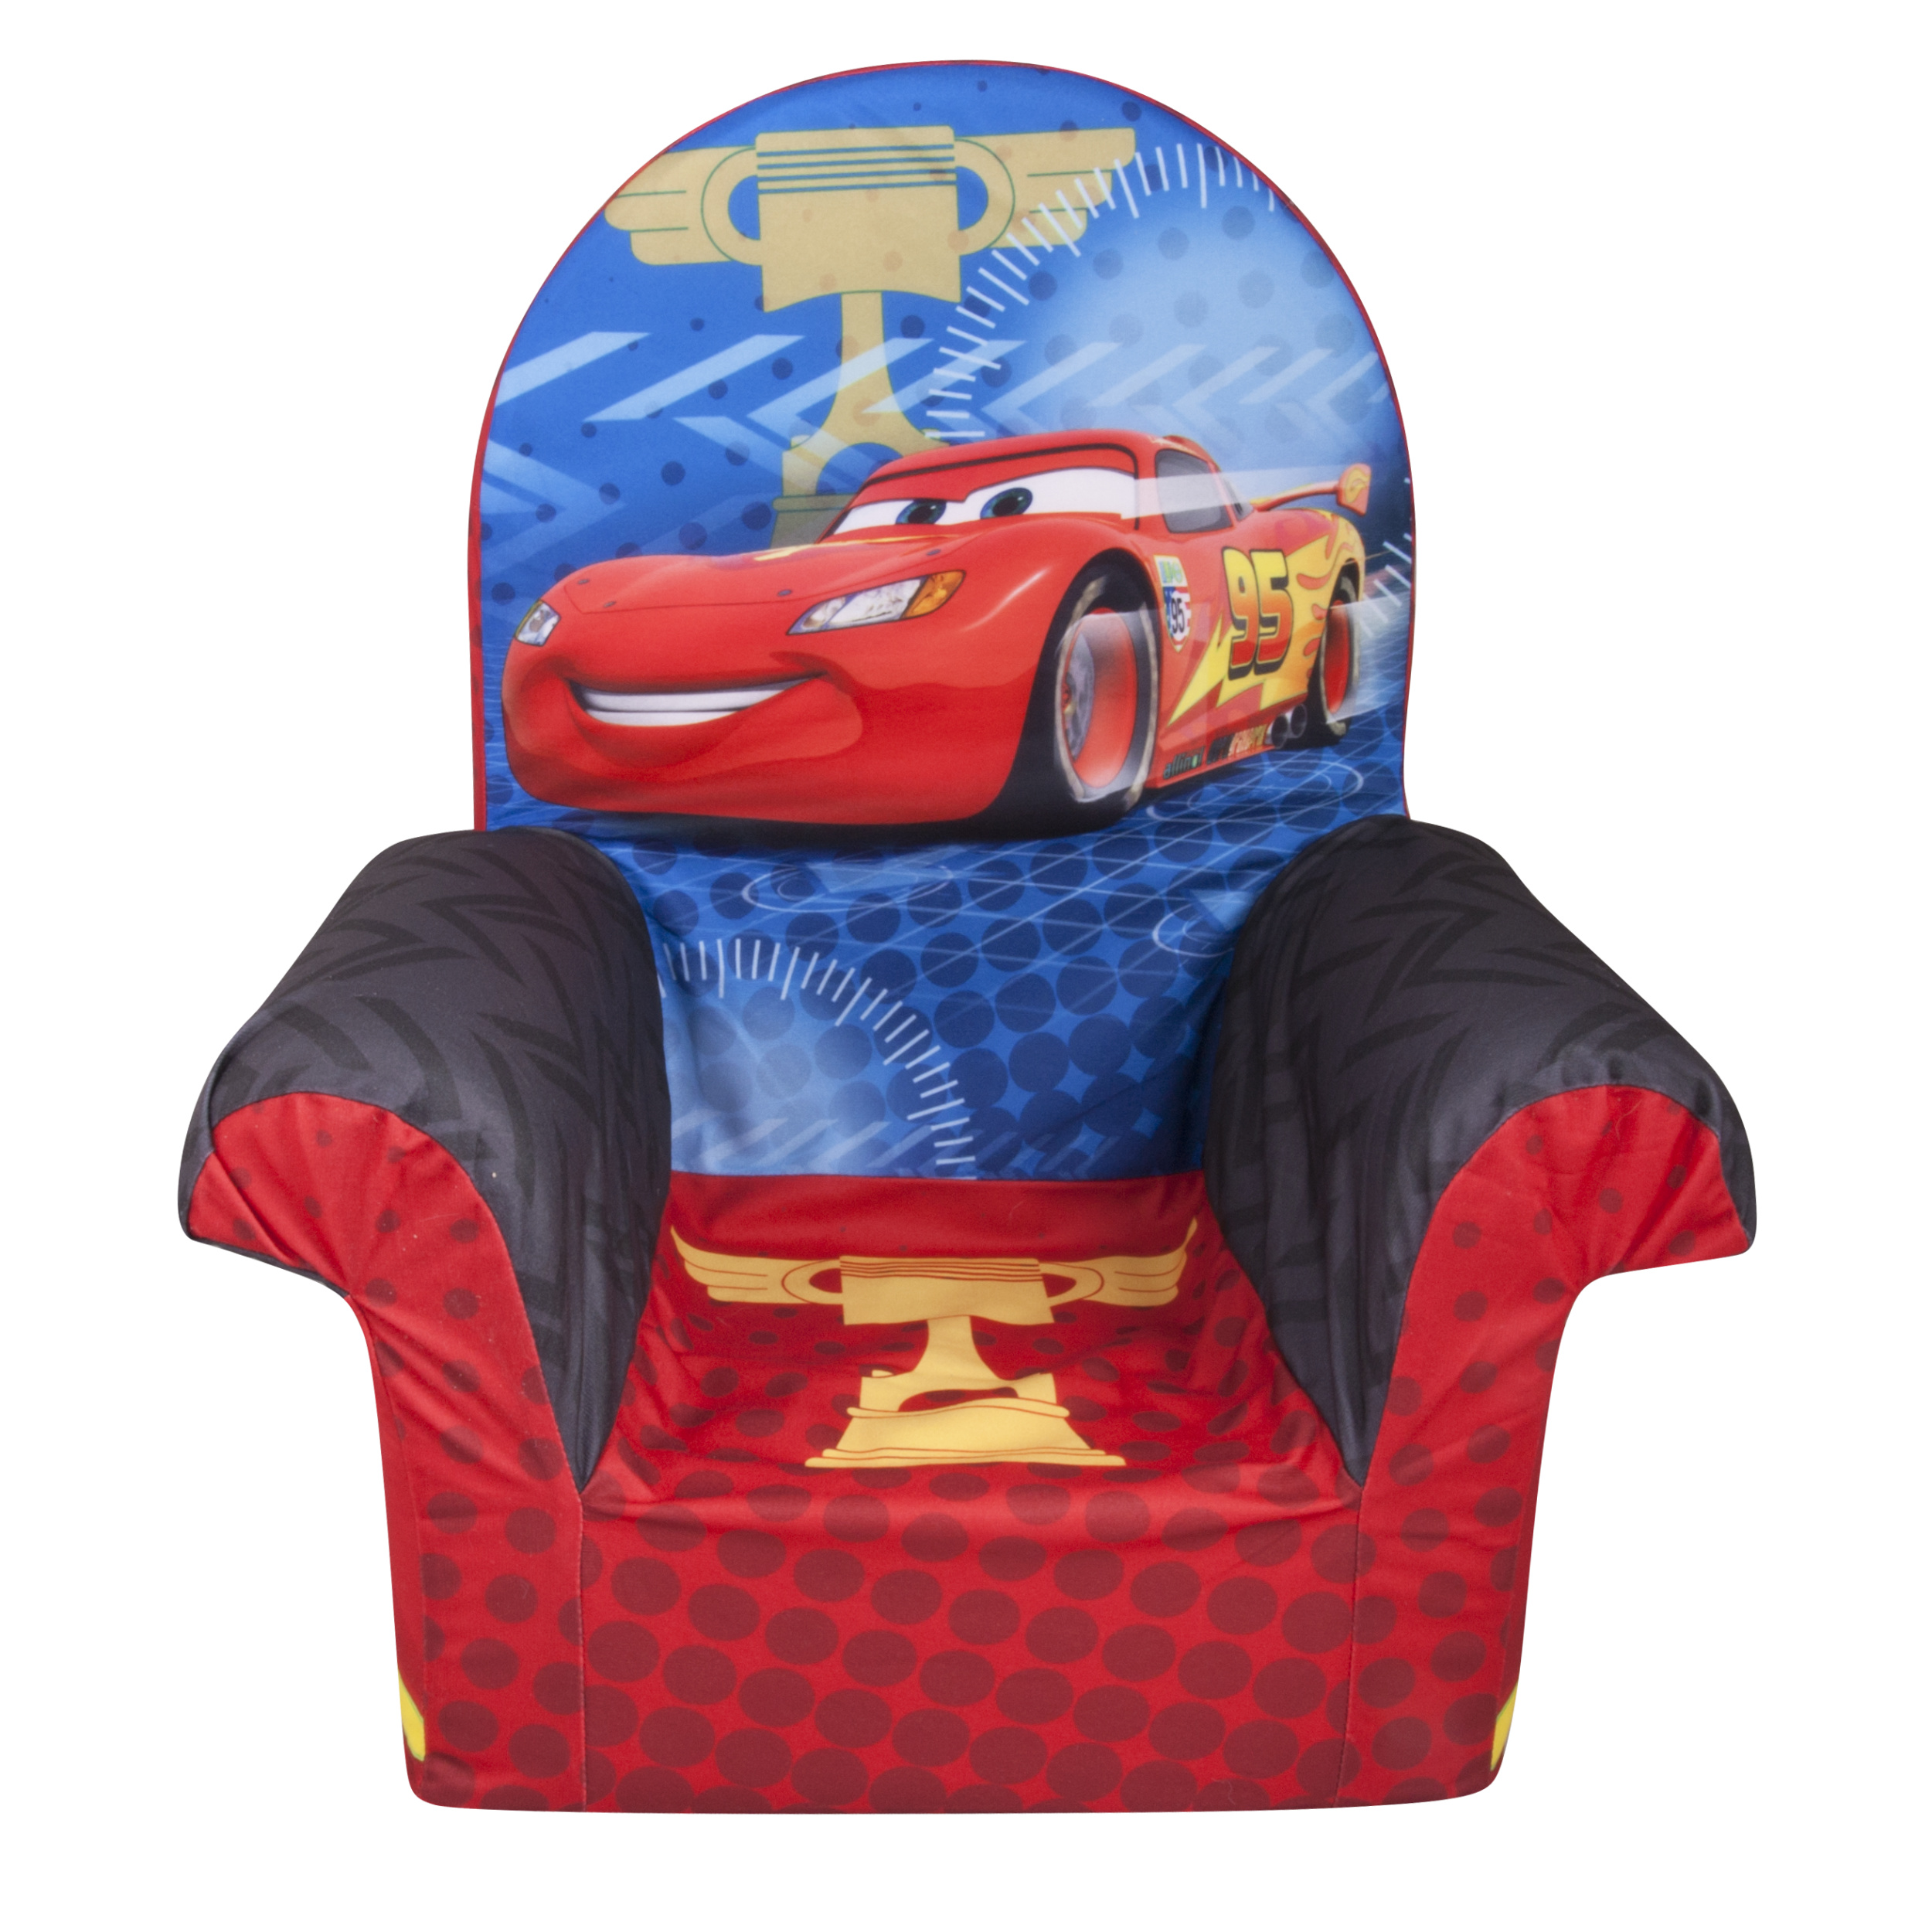 Marshmallow Furniture, Children's Foam High Back Chair, Disney/Pixar Cars 2 High Back Chair